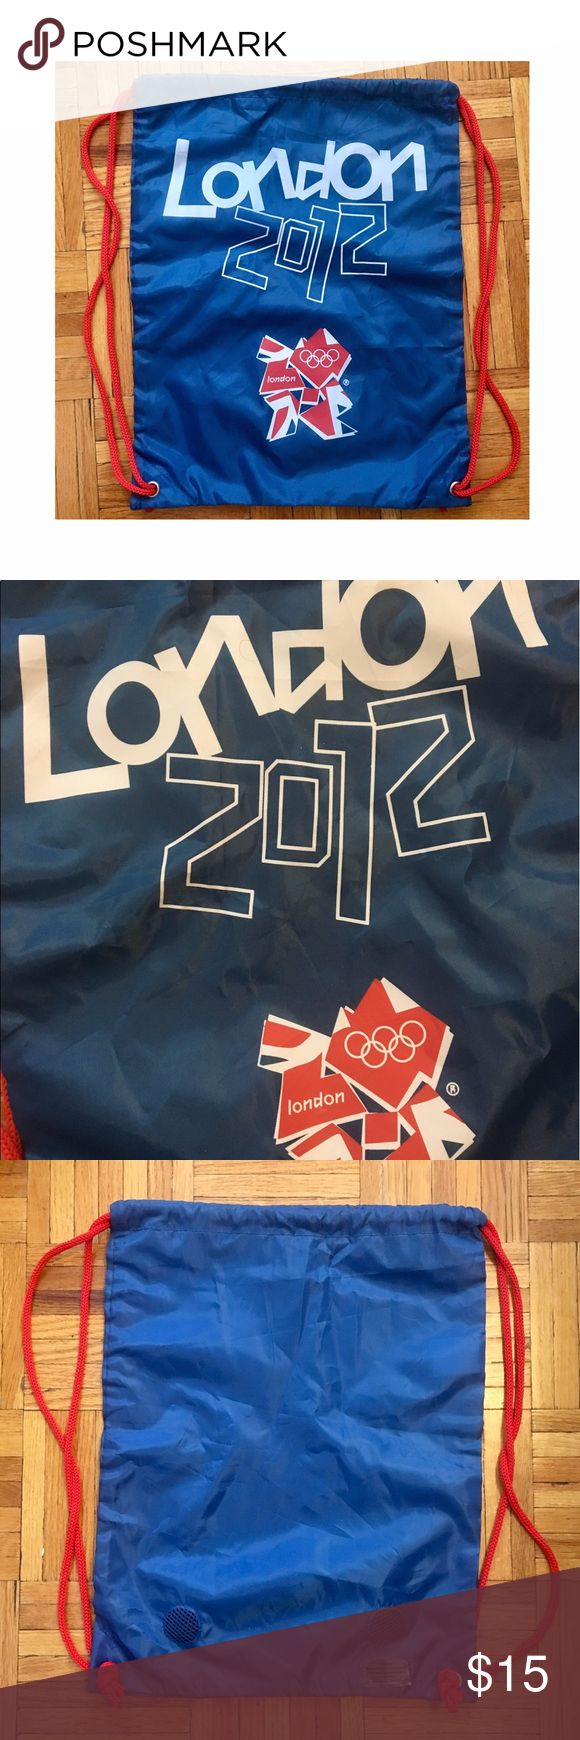 London 2012 Olympics drawstring bag Authentic London 2012 memorabilia. Drawstring backpack with blue sack and red strings. London 2012 Olympic logo on back. 2 vents to avoid stinky gym smells on the bottom. Only used once; in excellent condition, other than being a little wrinkled from being in my closet. (Listed under Adidas because my other London 2012 drawstring bag was Adidas, and got exposure) adidas Bags Backpacks